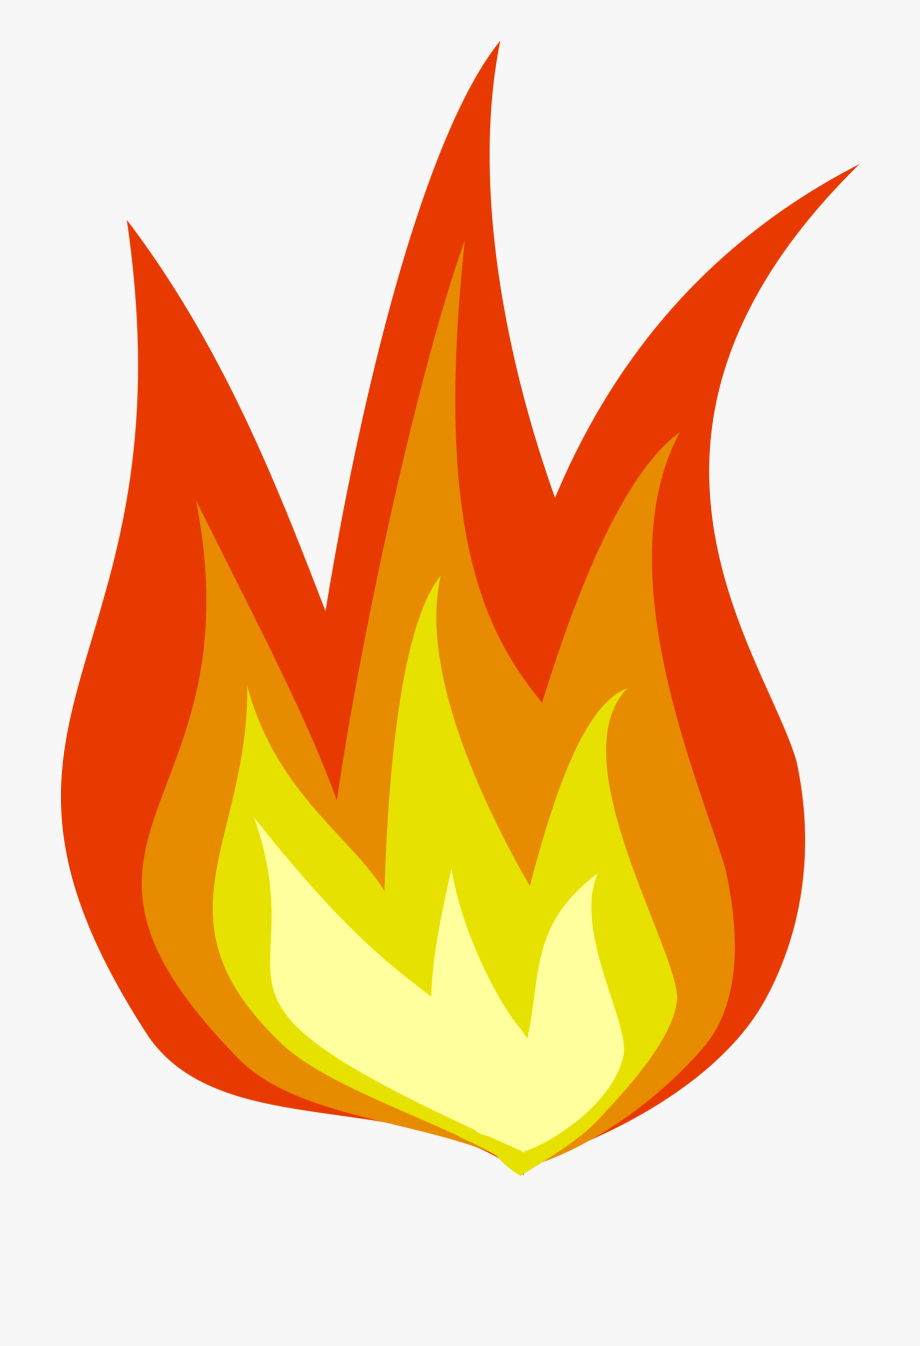 Flame clipart transparent background. Fire free cliparts on